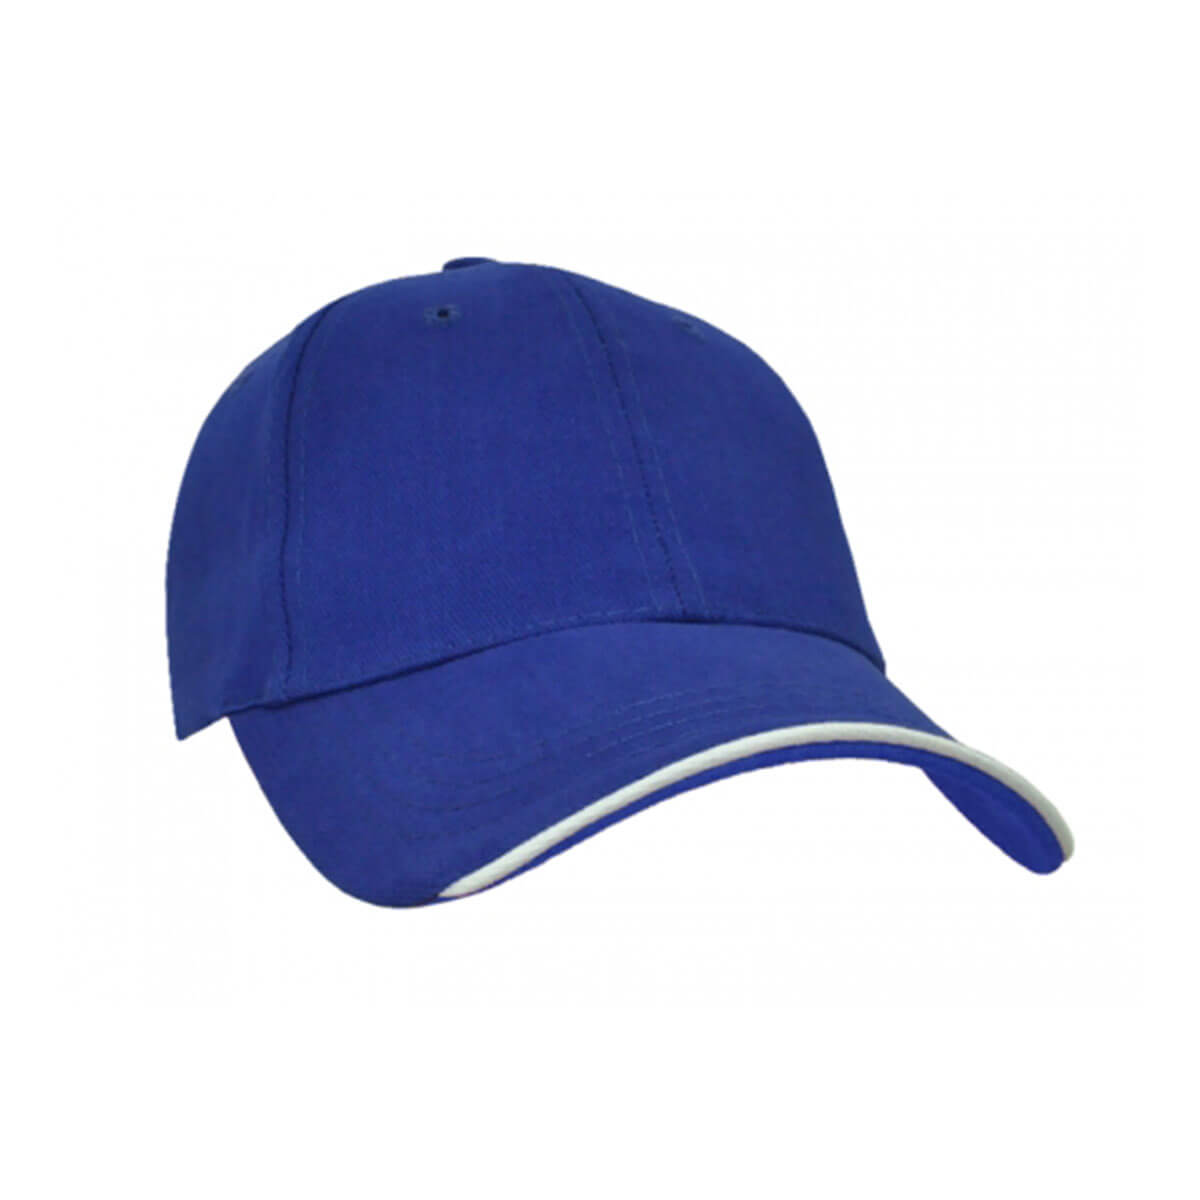 Navigator Cap-Royal / White / Royal